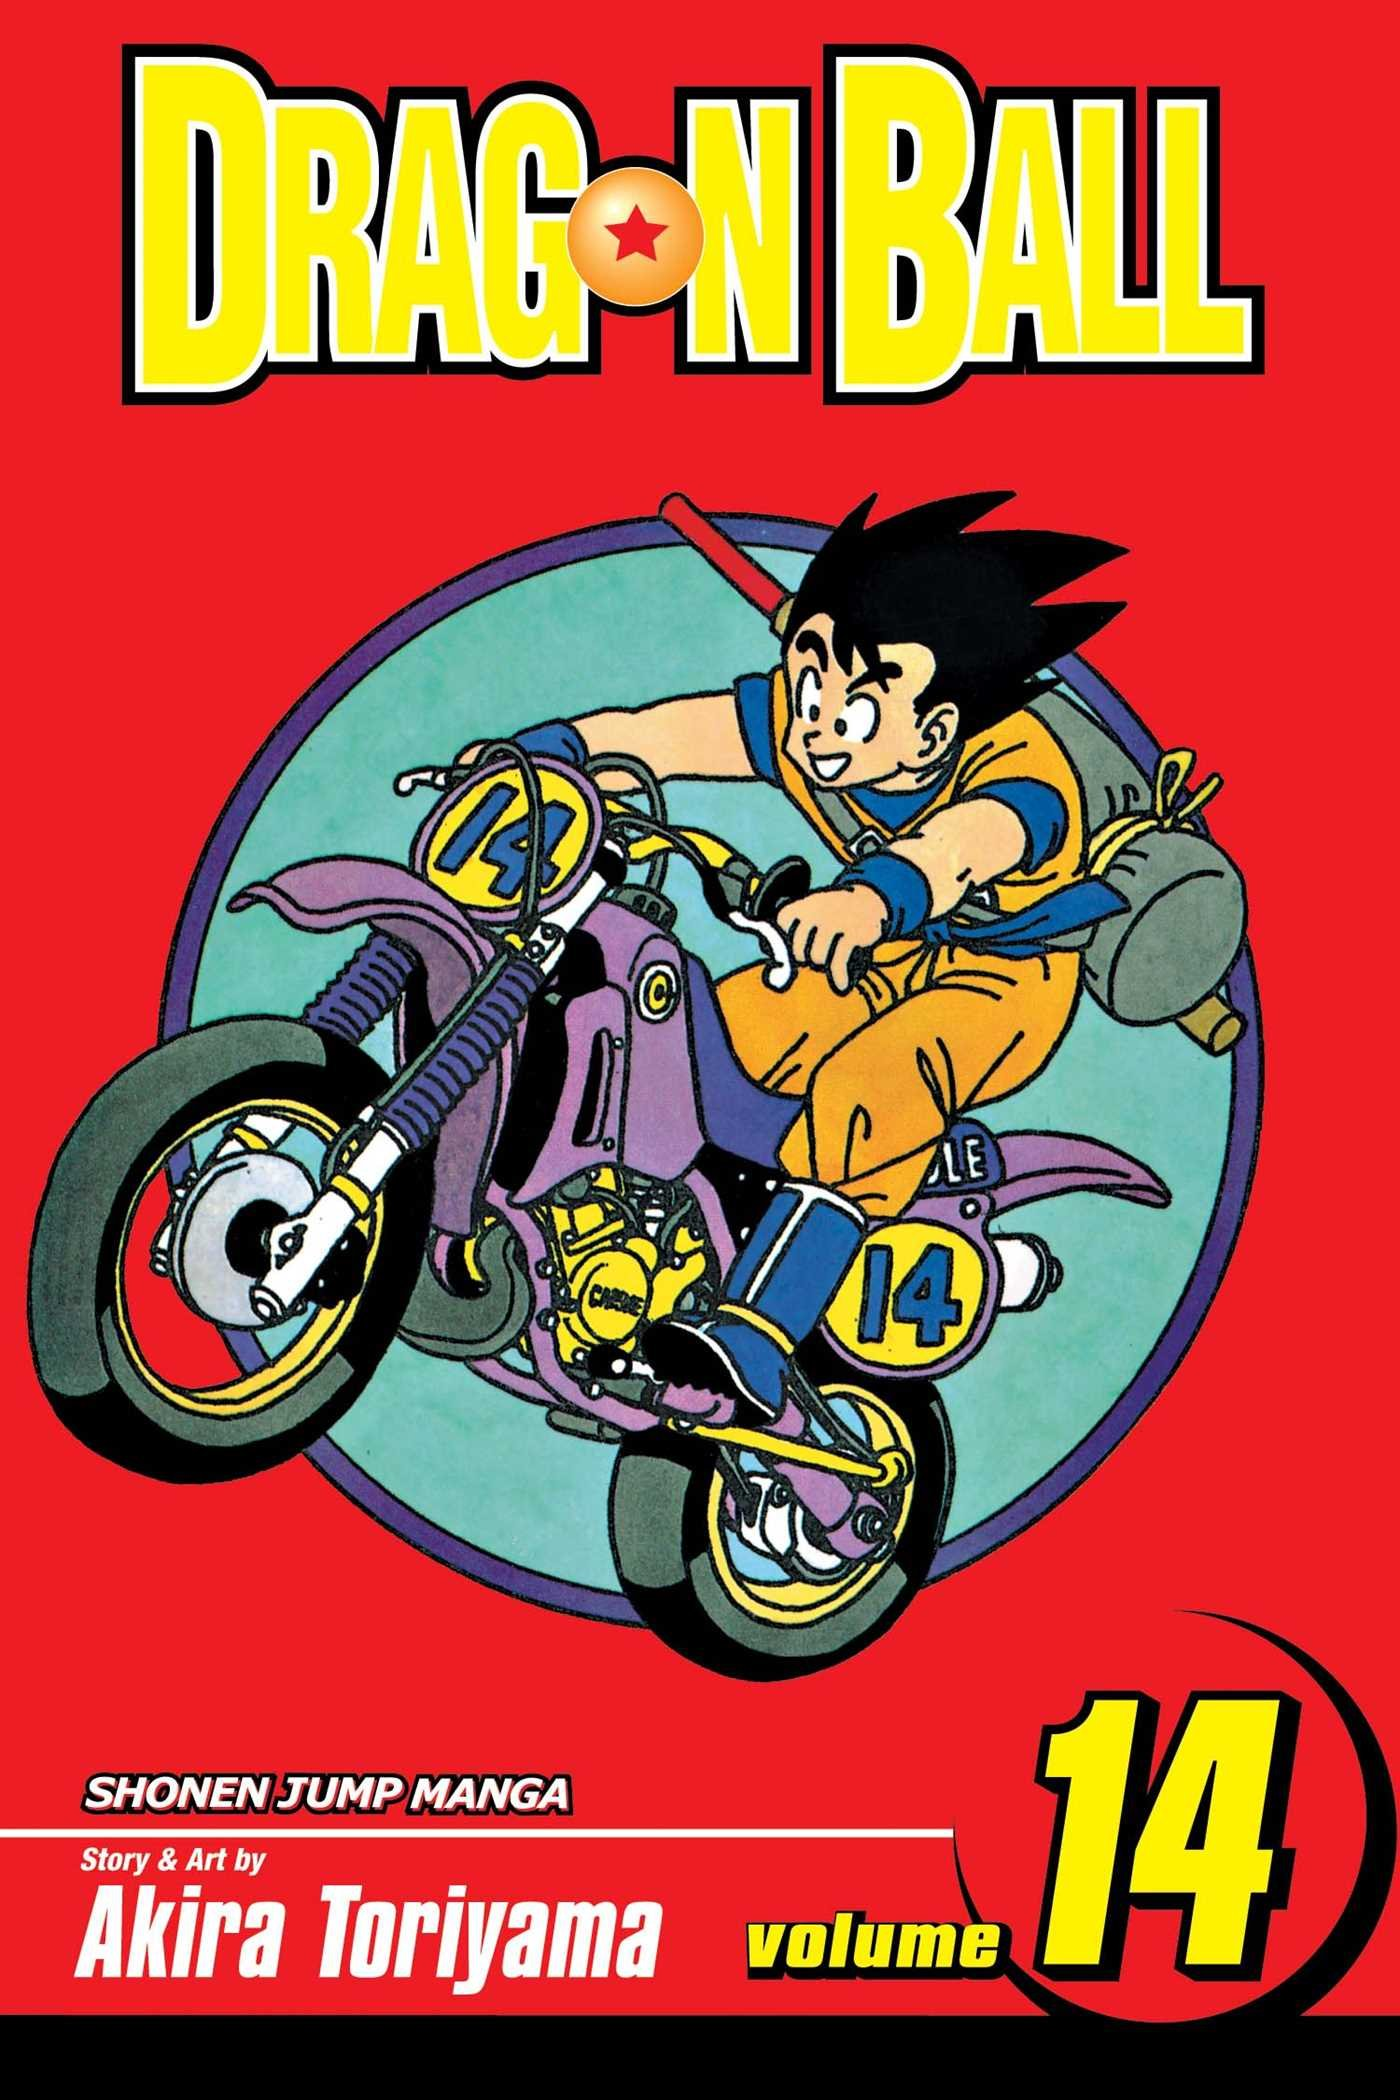 DRAGON BALL SHONEN J ED GN VOL 14  C  1 0 0